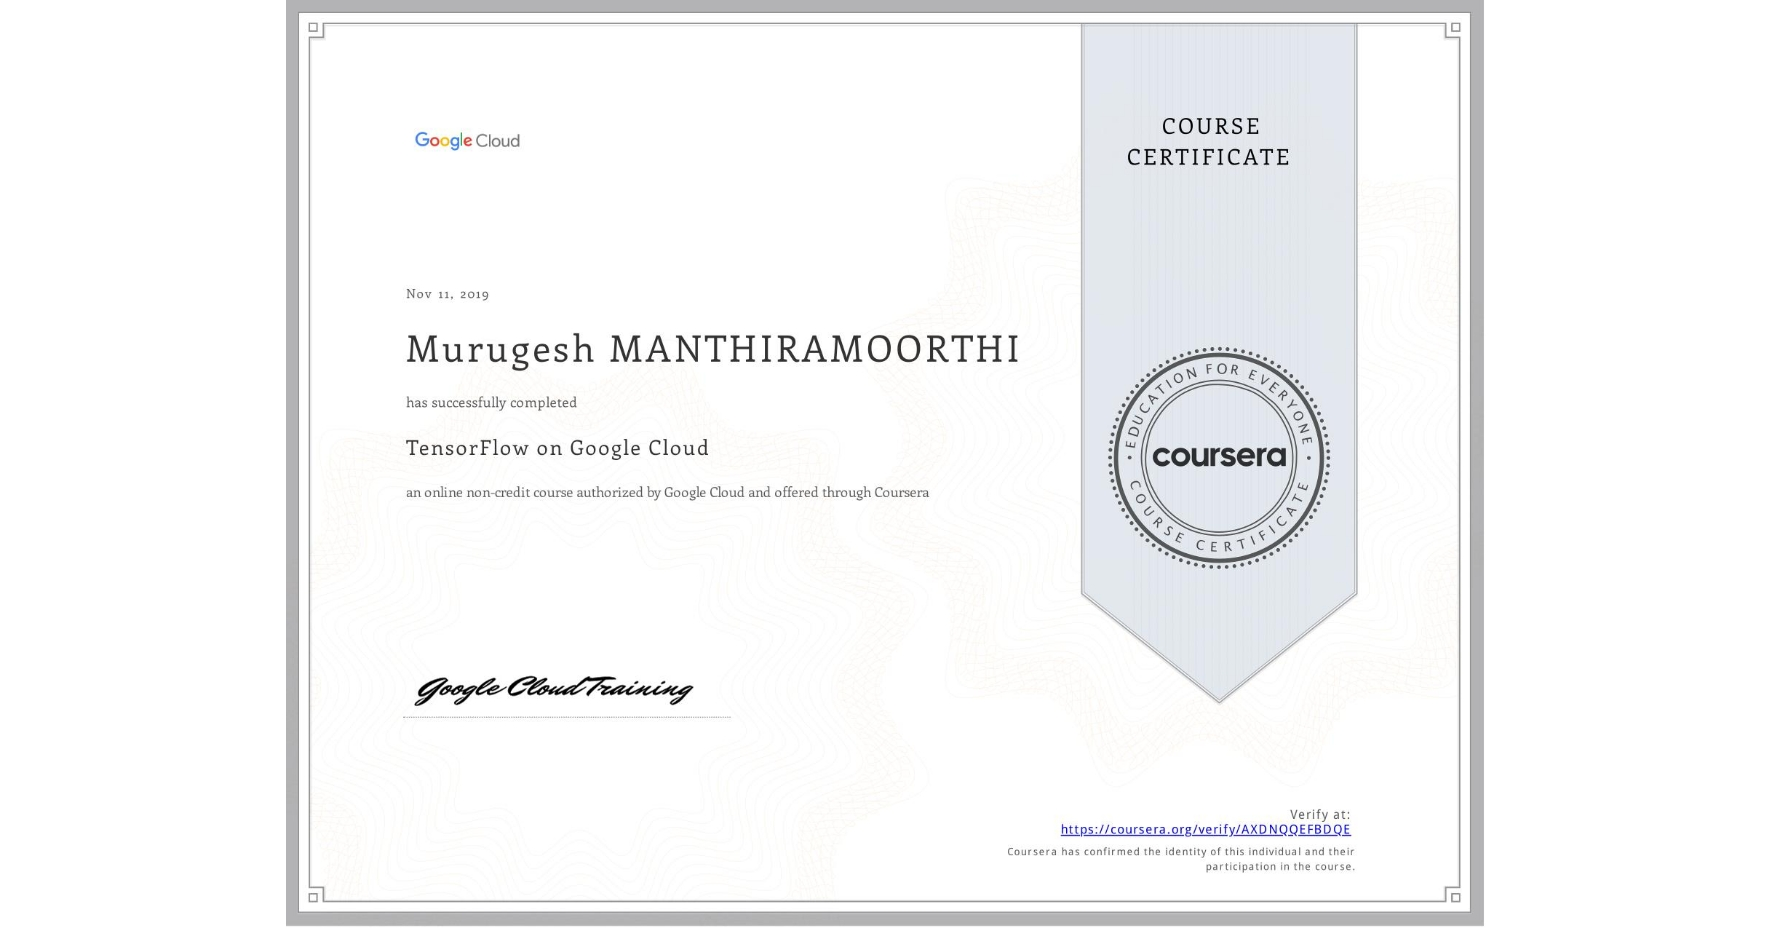 View certificate for Murugesh Manthiramoorthi, Introduction to TensorFlow, an online non-credit course authorized by Google Cloud and offered through Coursera